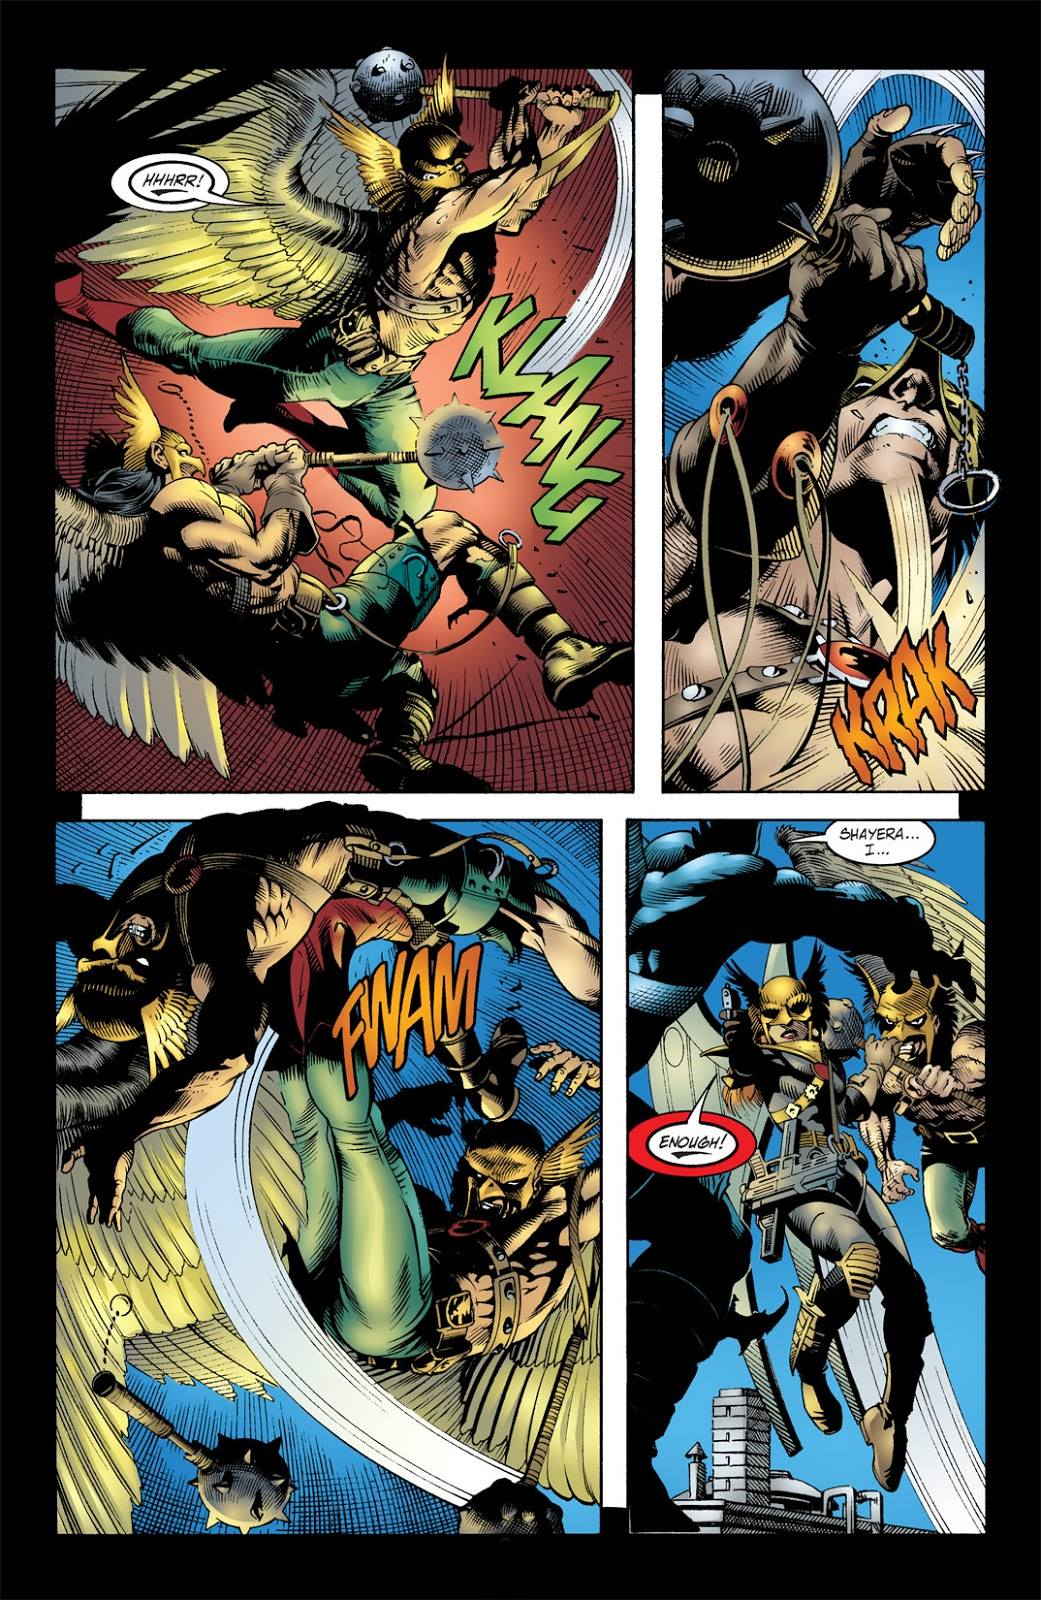 Geoff Johns Hawkman Volume Two review